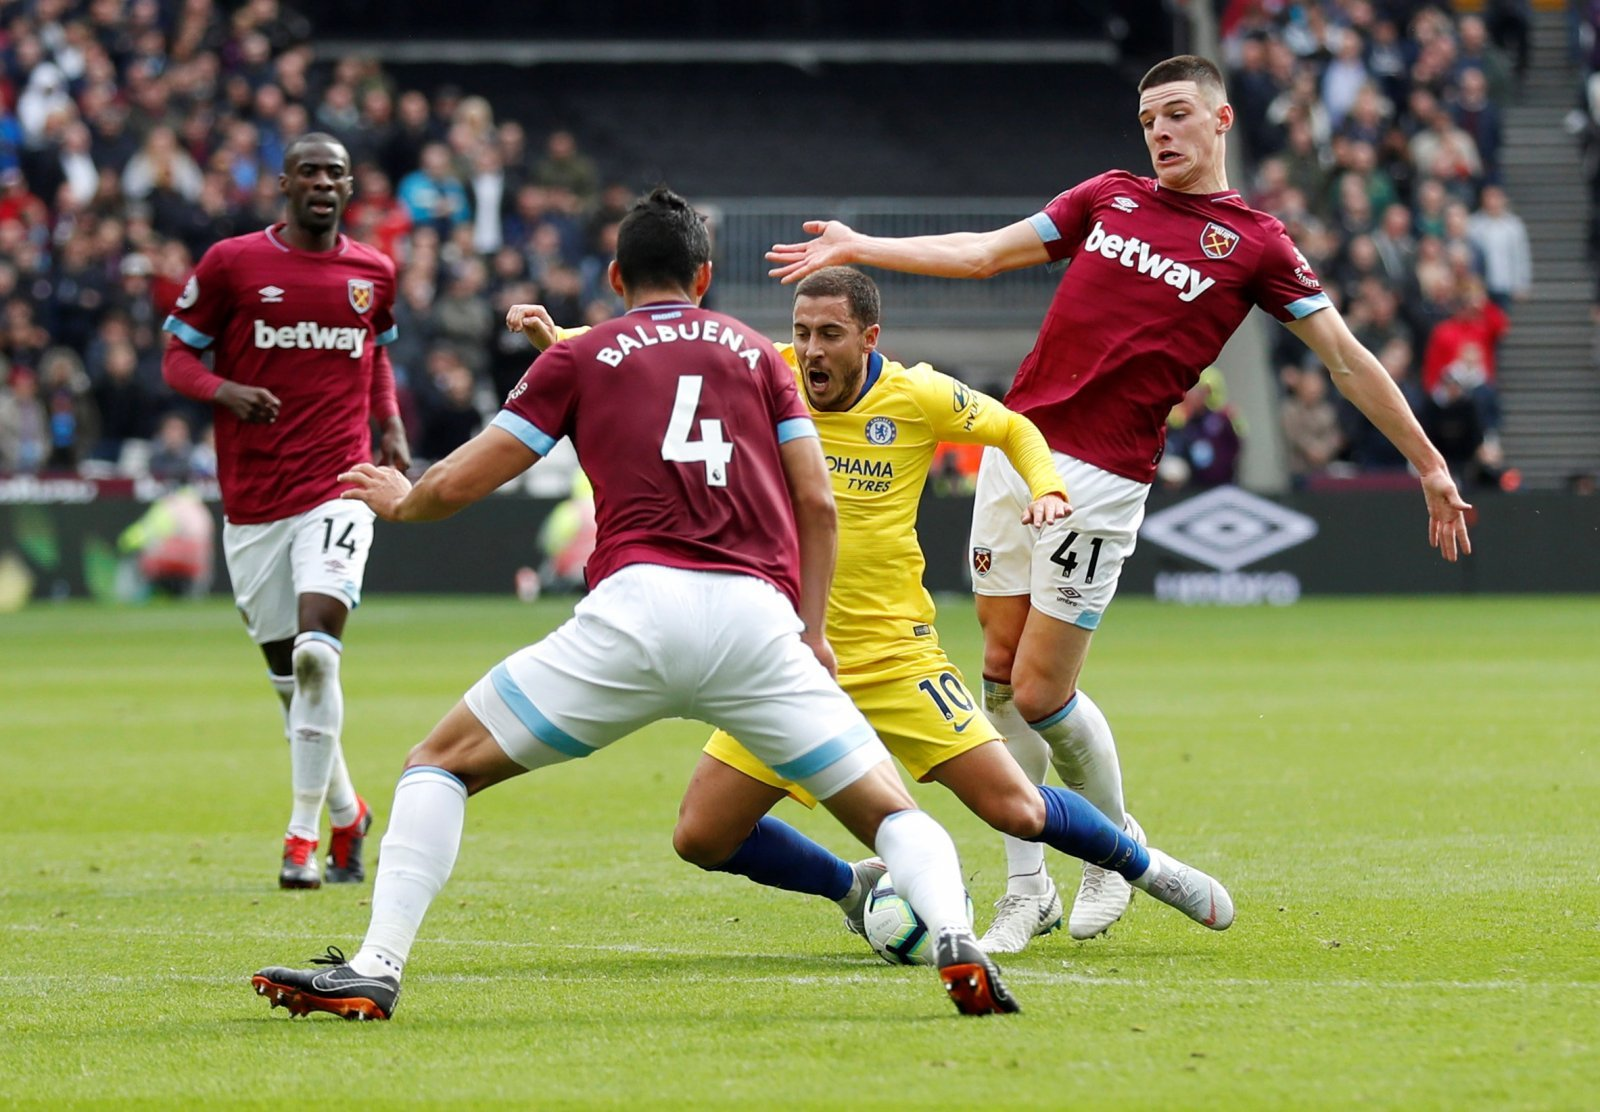 Recent developments should prompt Marco Silva to lure Declan Rice to Everton